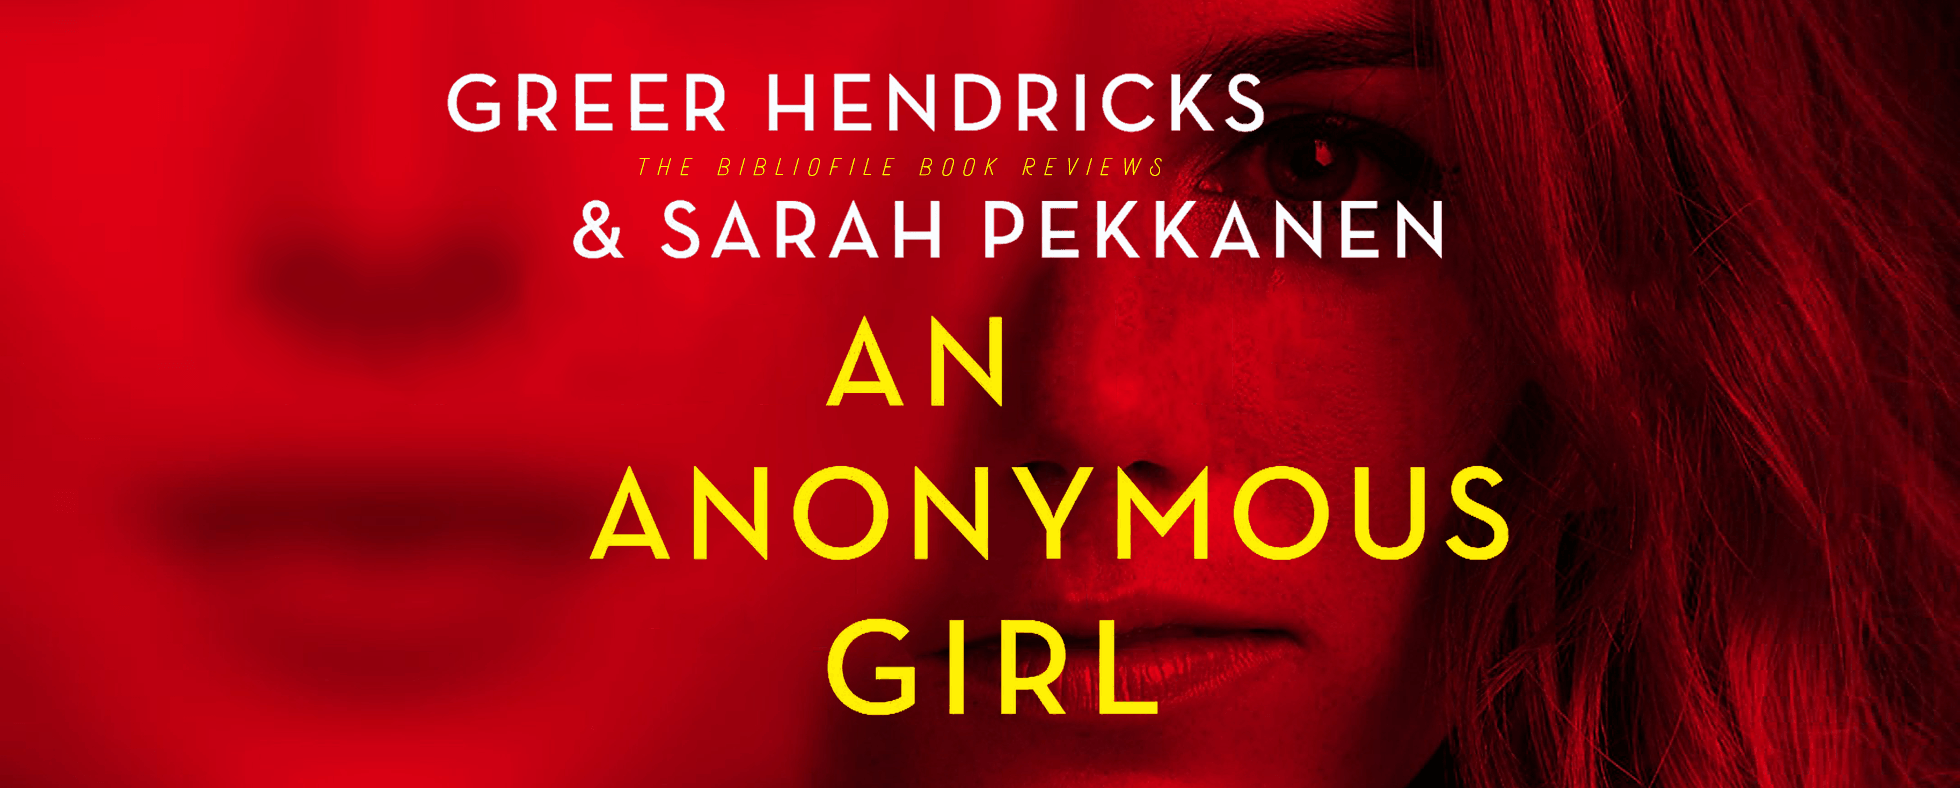 anonymous girl sarah pekkanen greer hendricks